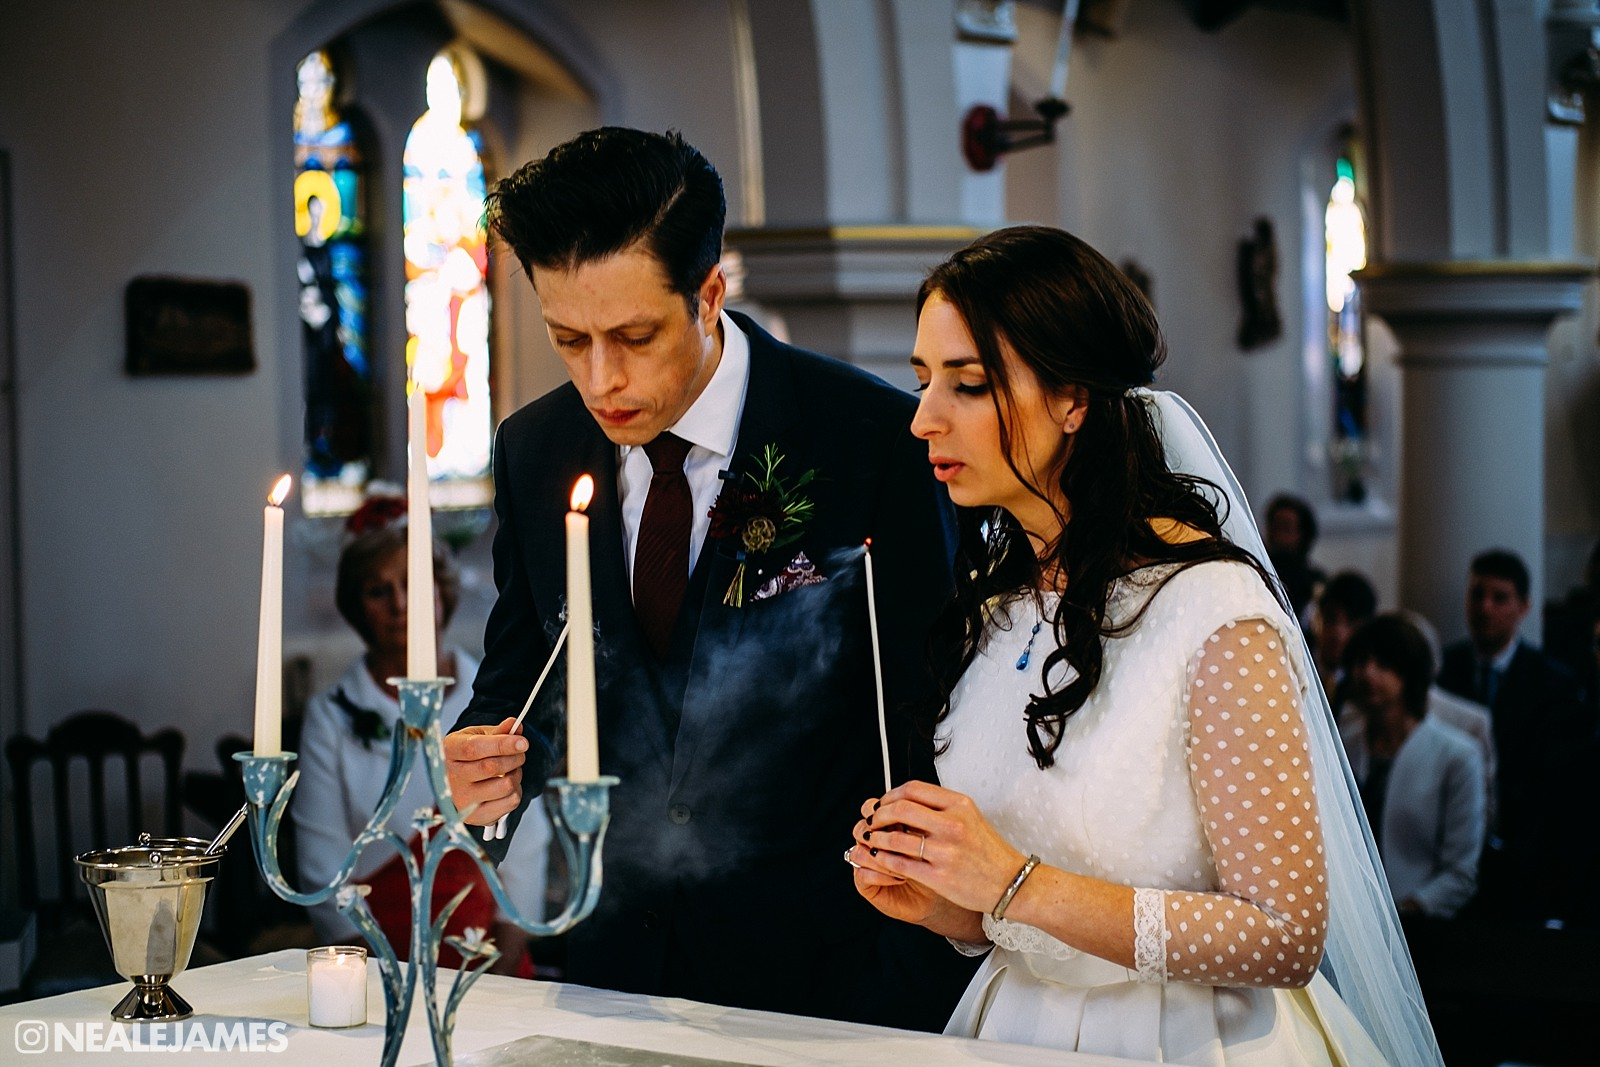 A bride and groom light a unity candle in Sacred Heart Church Gosport